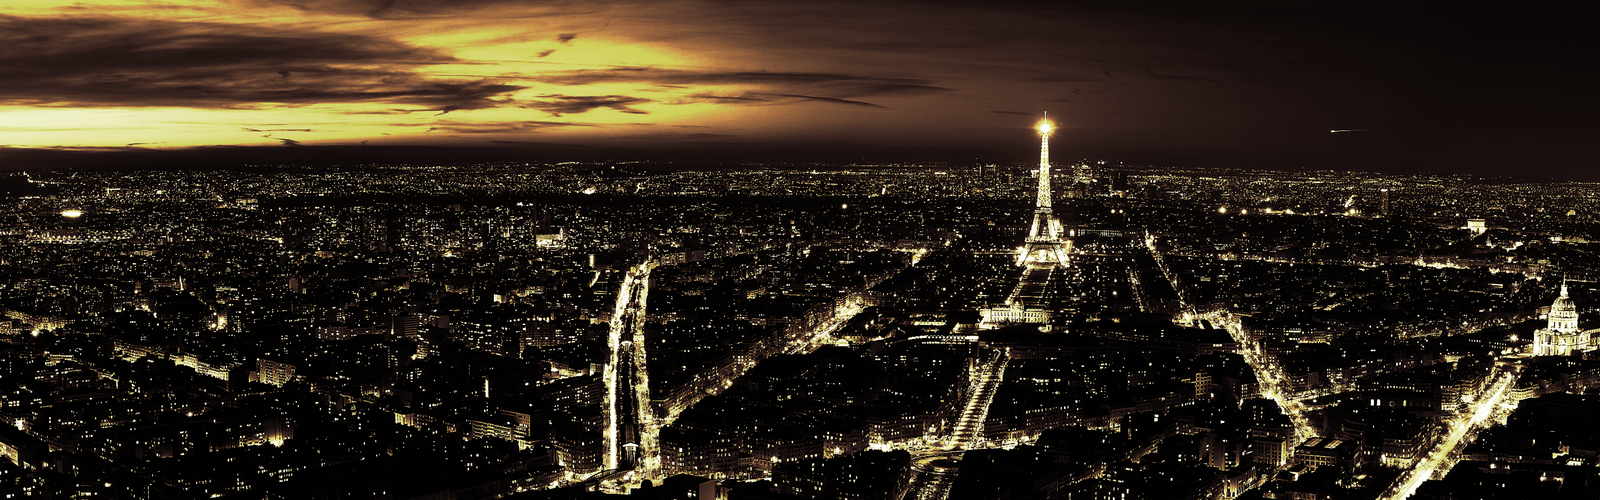 Download paris by night 97